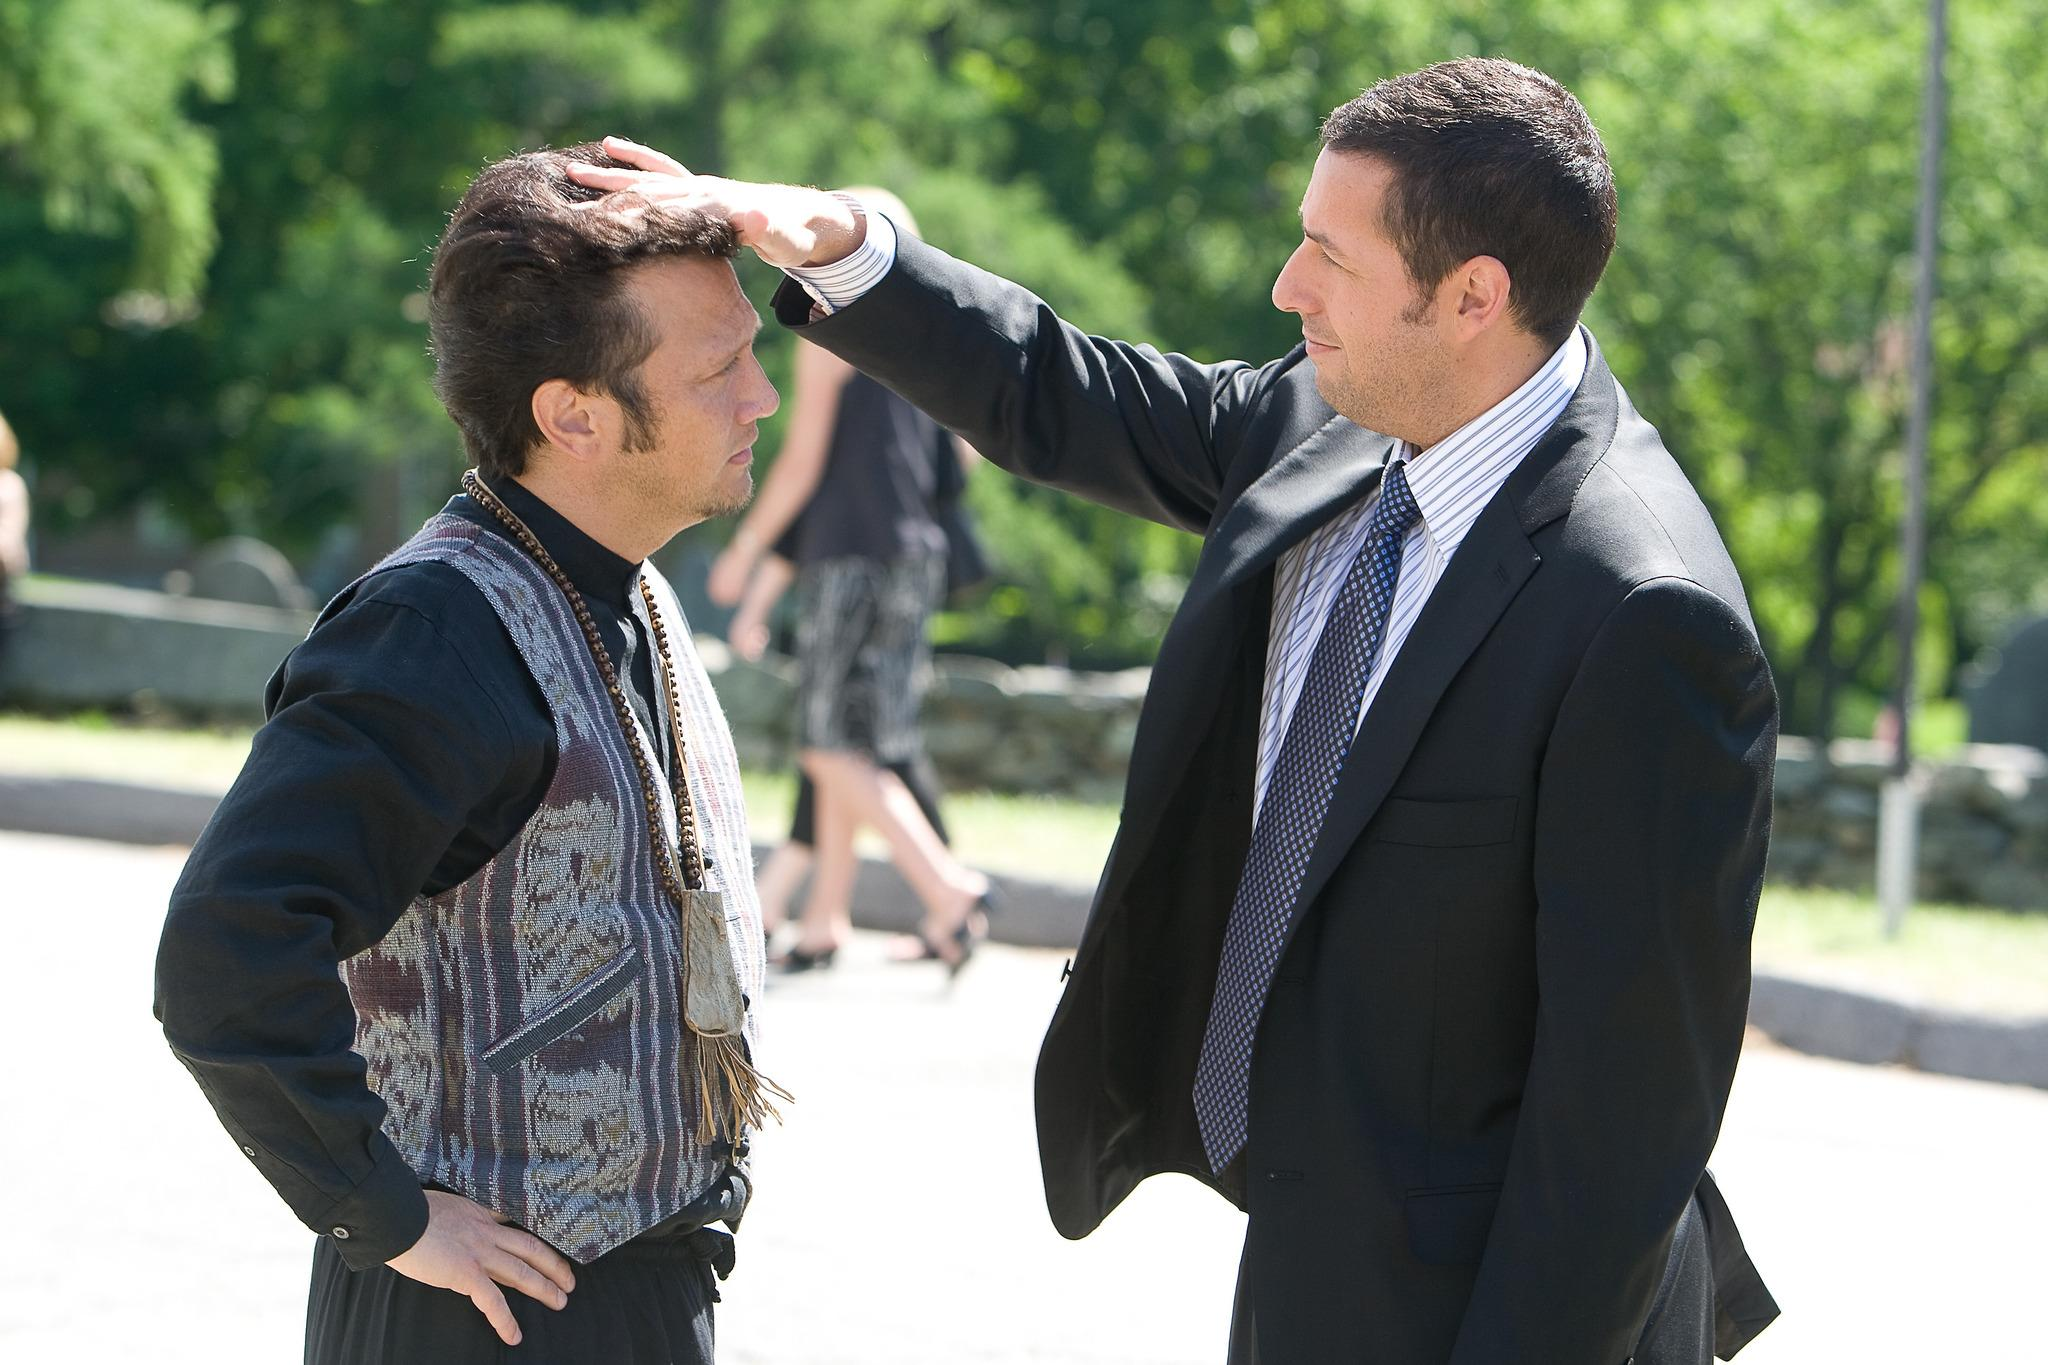 still-of-adam-sandler-and-rob-schneider-in-grown-ups